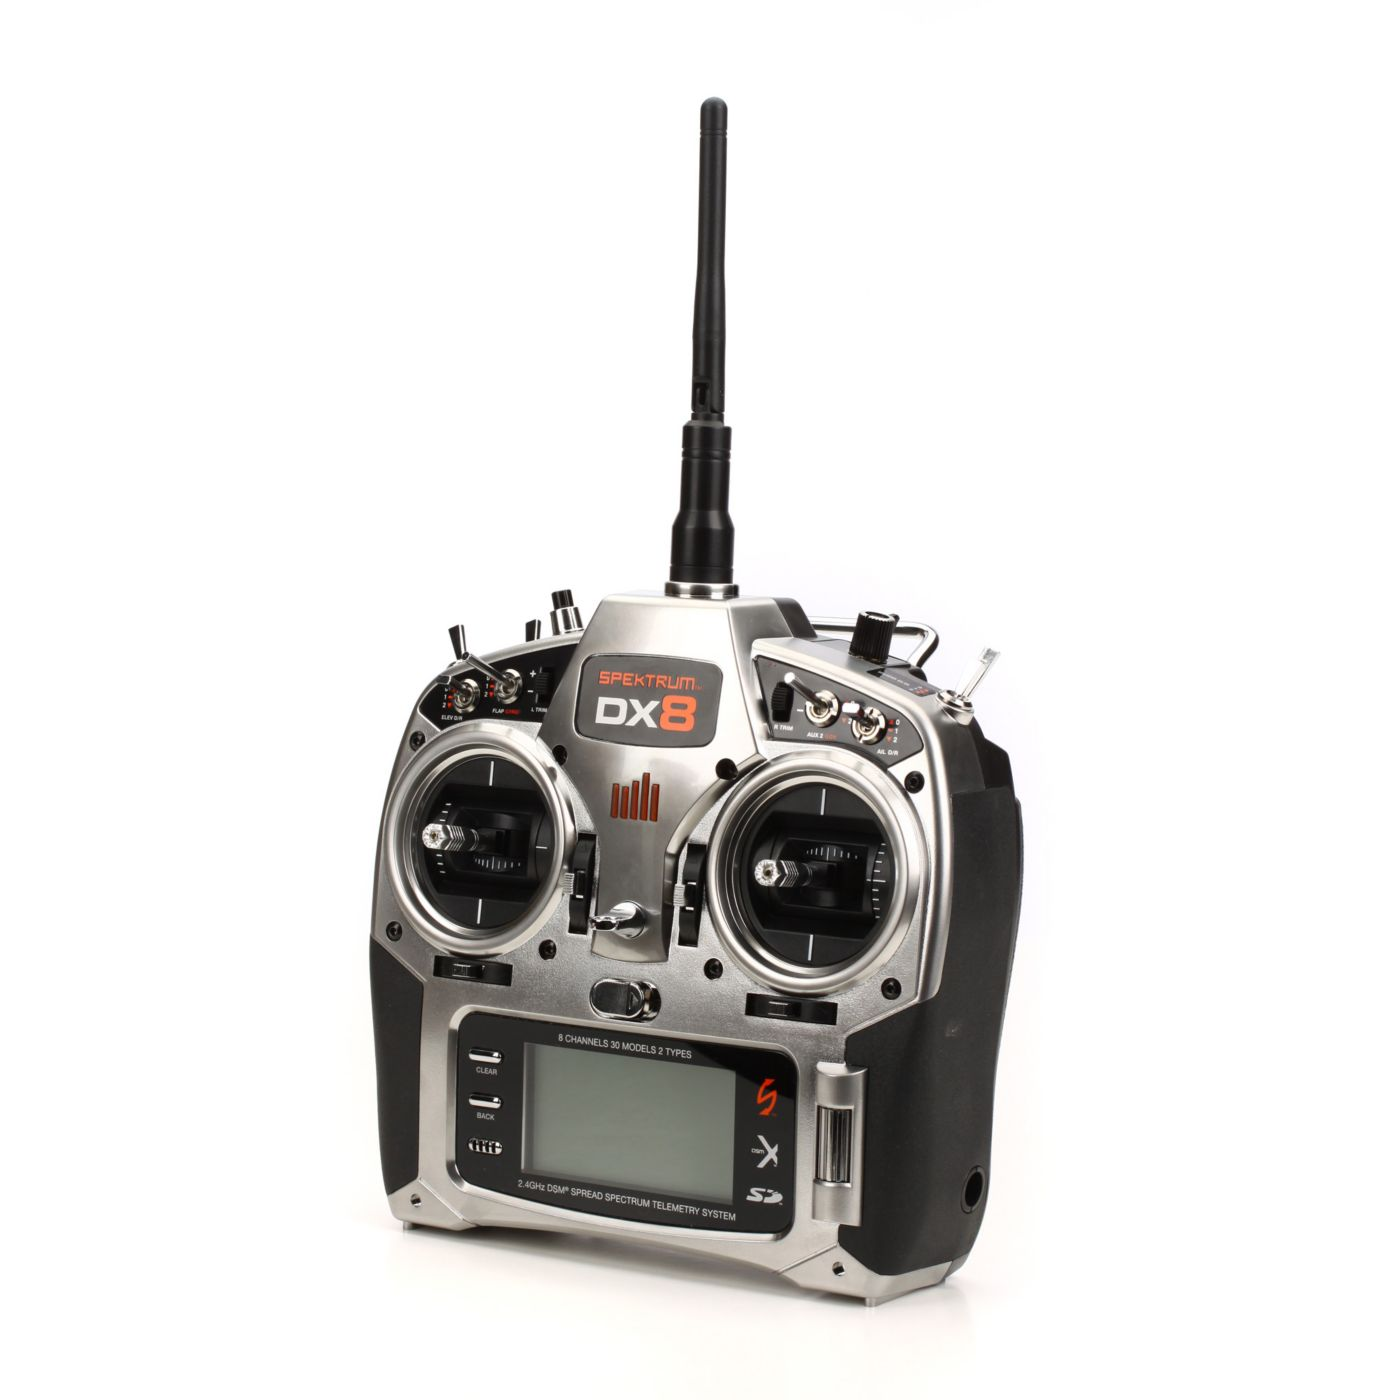 spektrum dx8 8 channel dsmx programmable transmitter with receiver and telemetry module horizon hobby [ 1400 x 778 Pixel ]